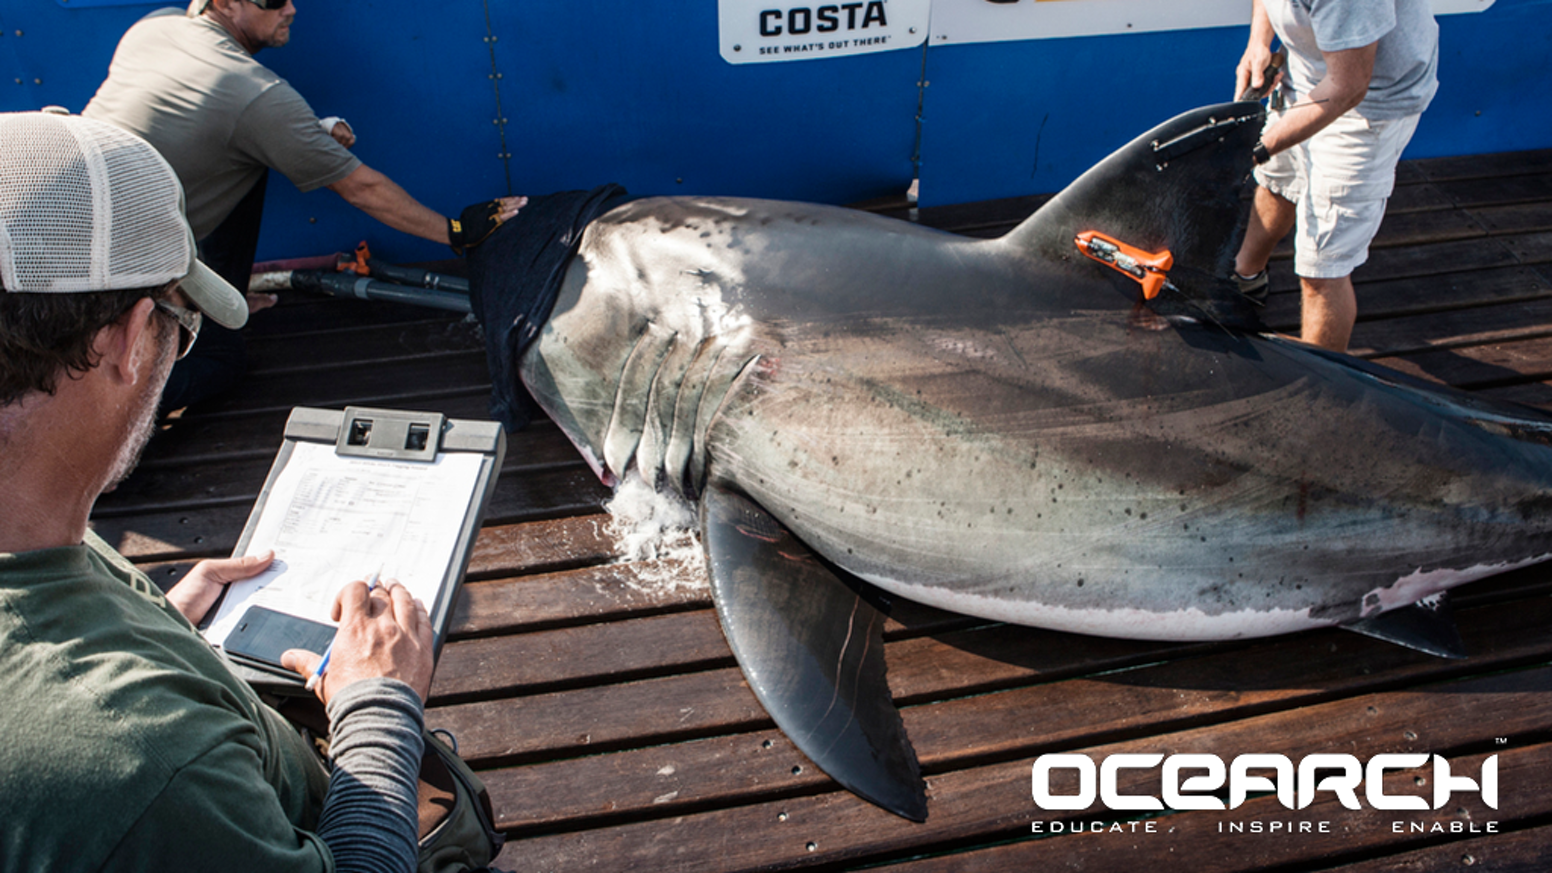 Fund our next expedition to tag and research Great White Sharks in the North Atlantic while open sourcing the collected data to all.